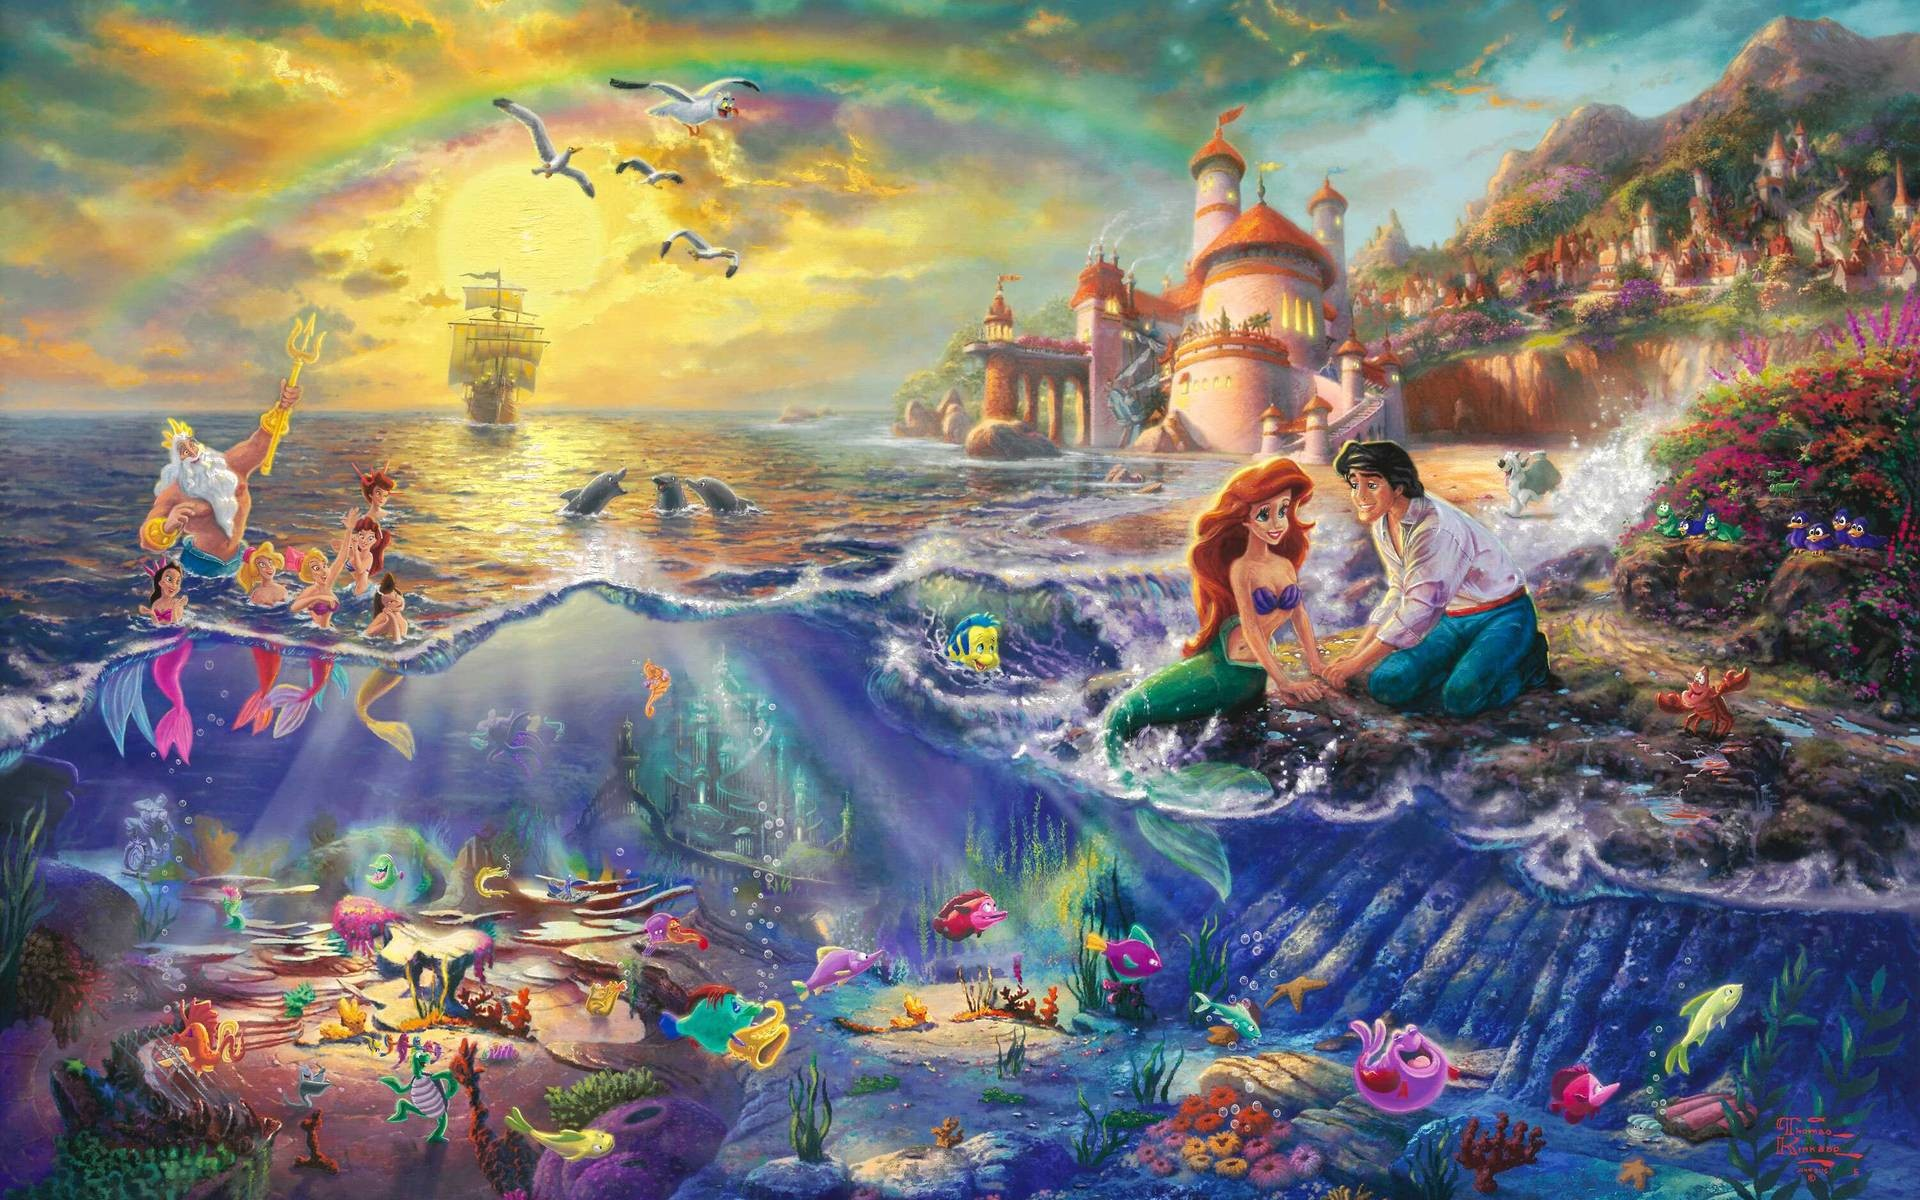 48 The Little Mermaid Wallpapers | The Little Mermaid Backgrounds